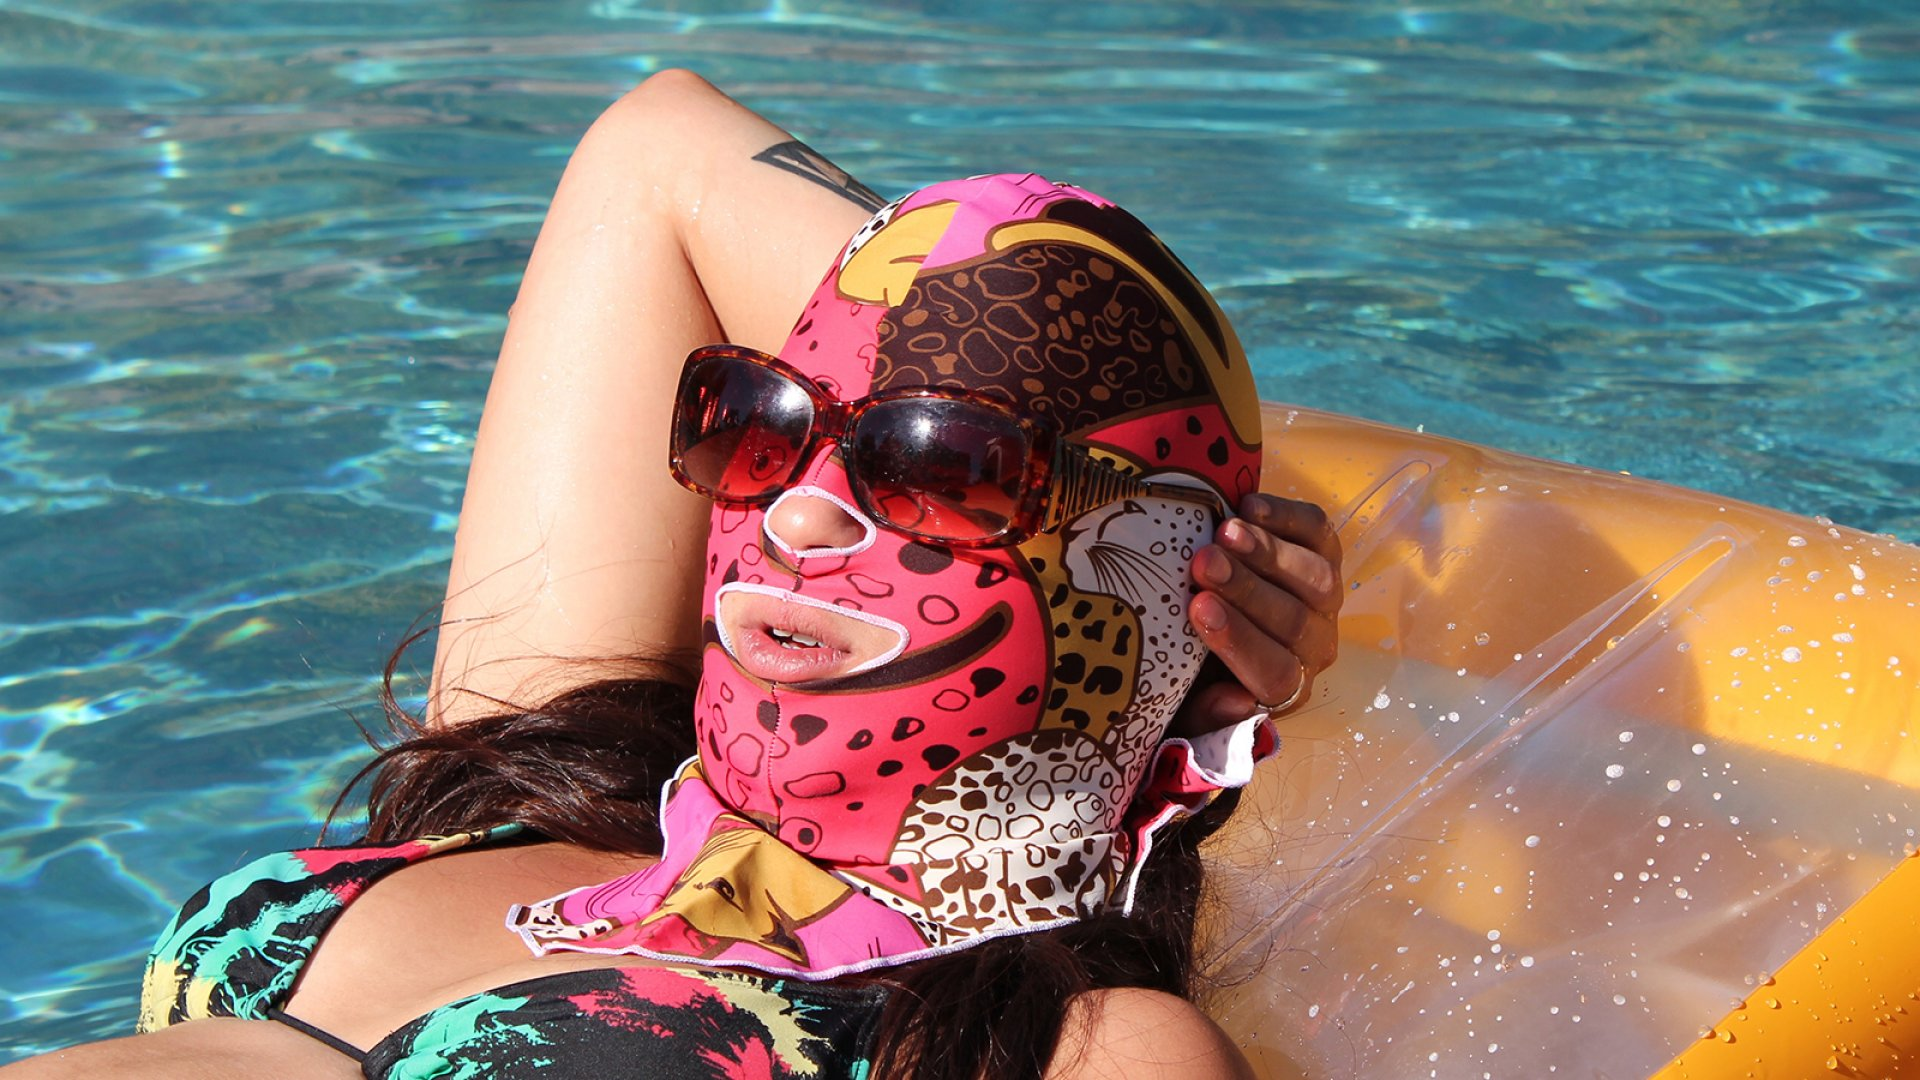 The facekini trend has swept through China, but the trademark was purchased in the United States in 2013 by Gregory delNero.